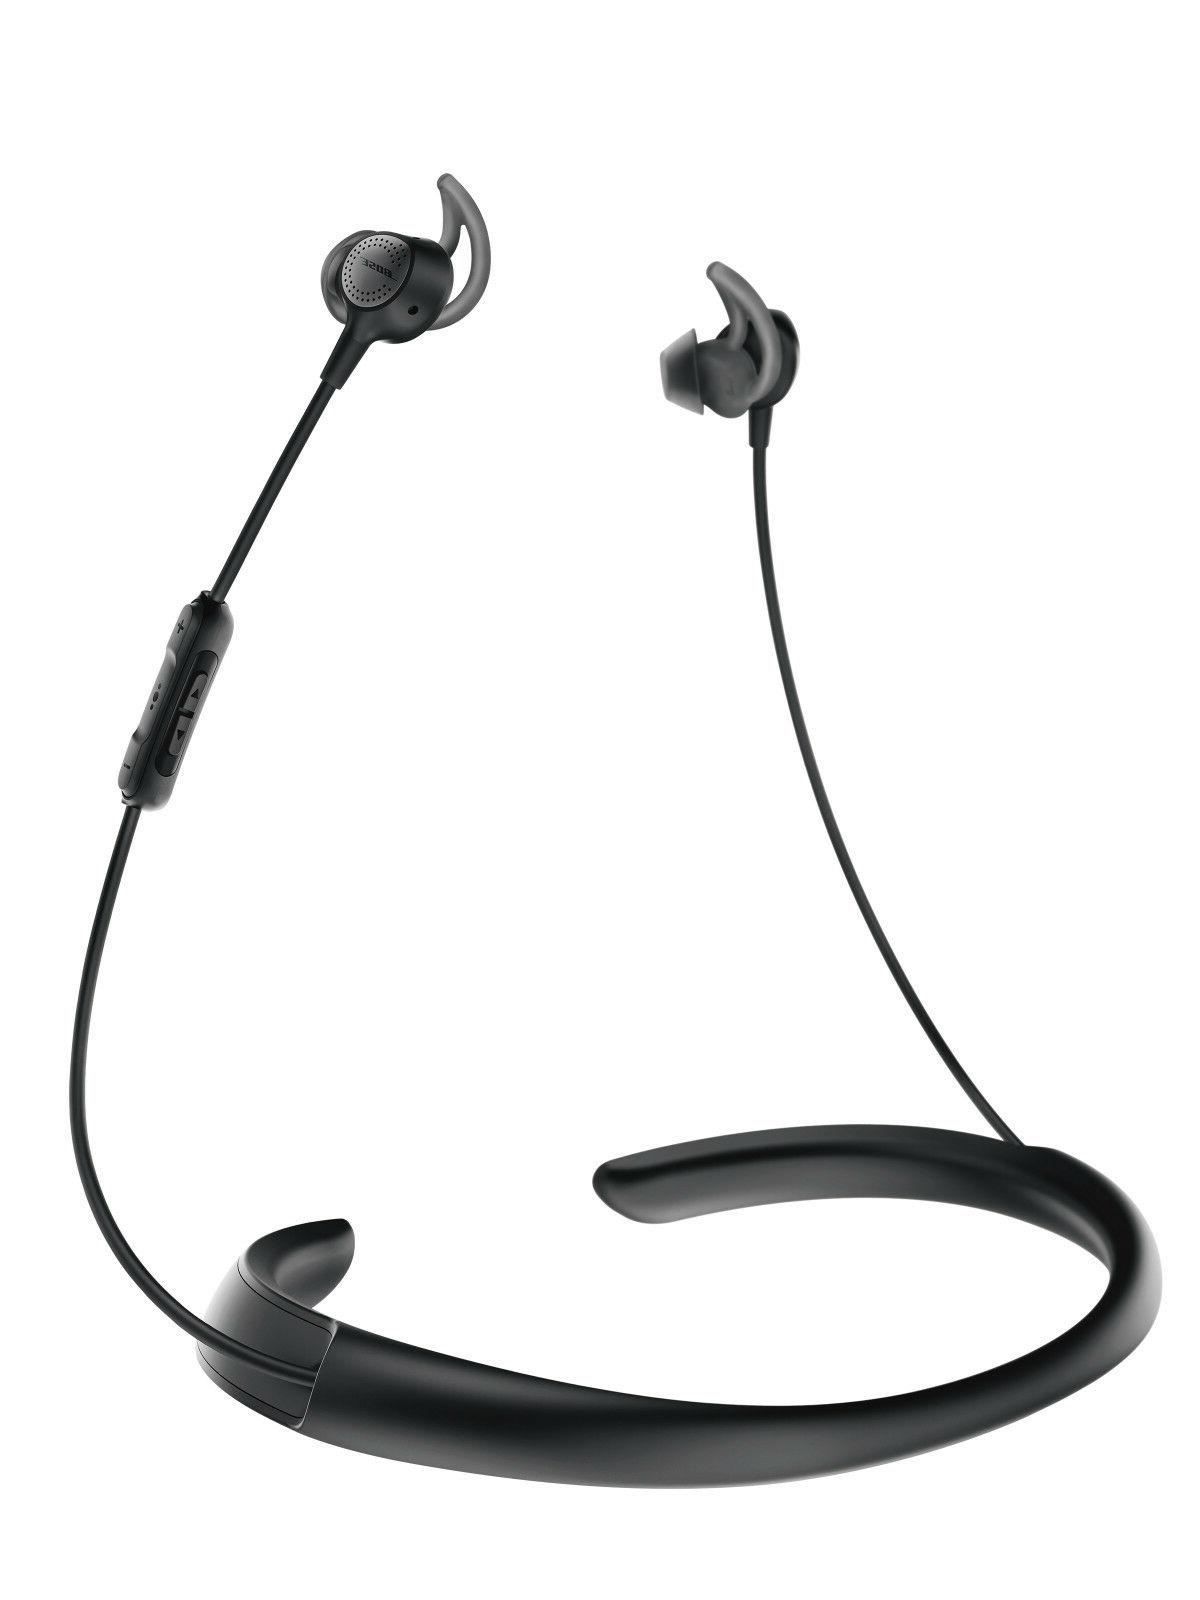 Bose QuietControl Bluetooth, Noise Canceling Buds